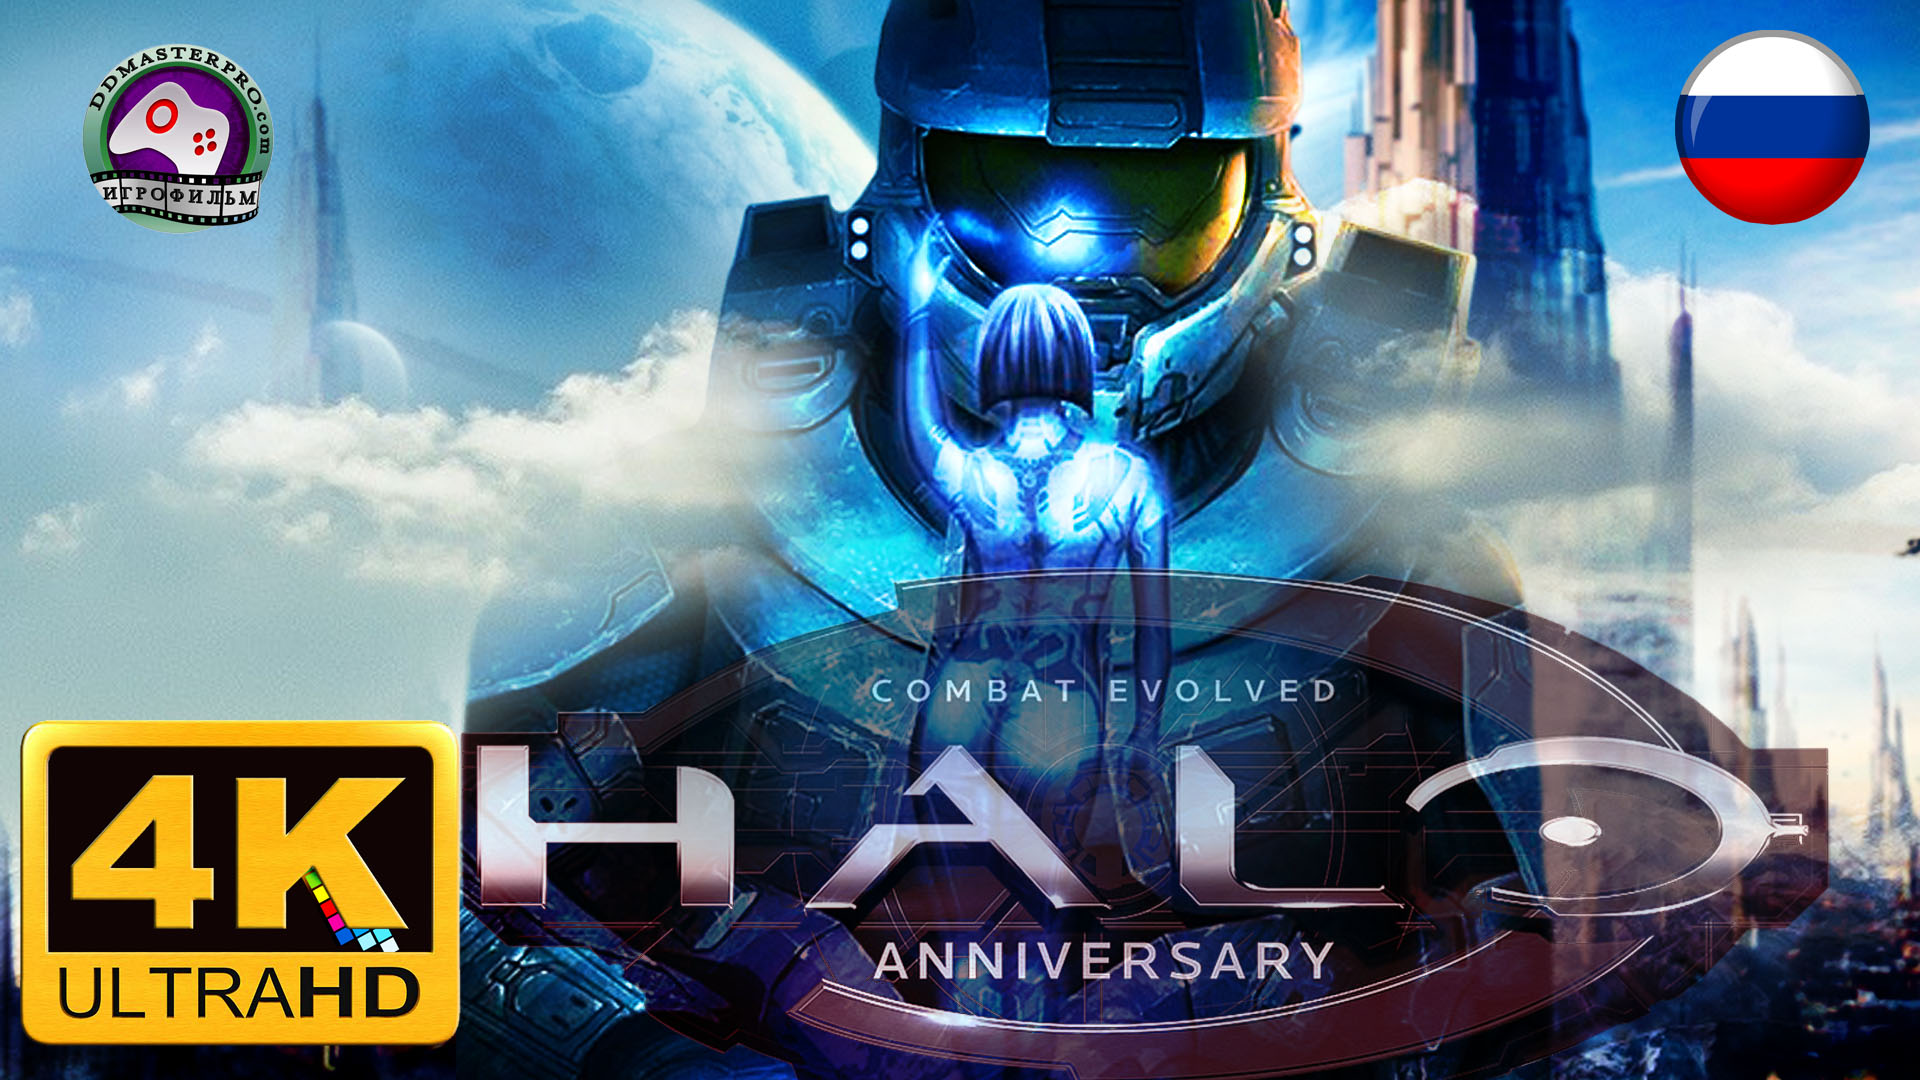 Halo Combat Evolved Игрофильм